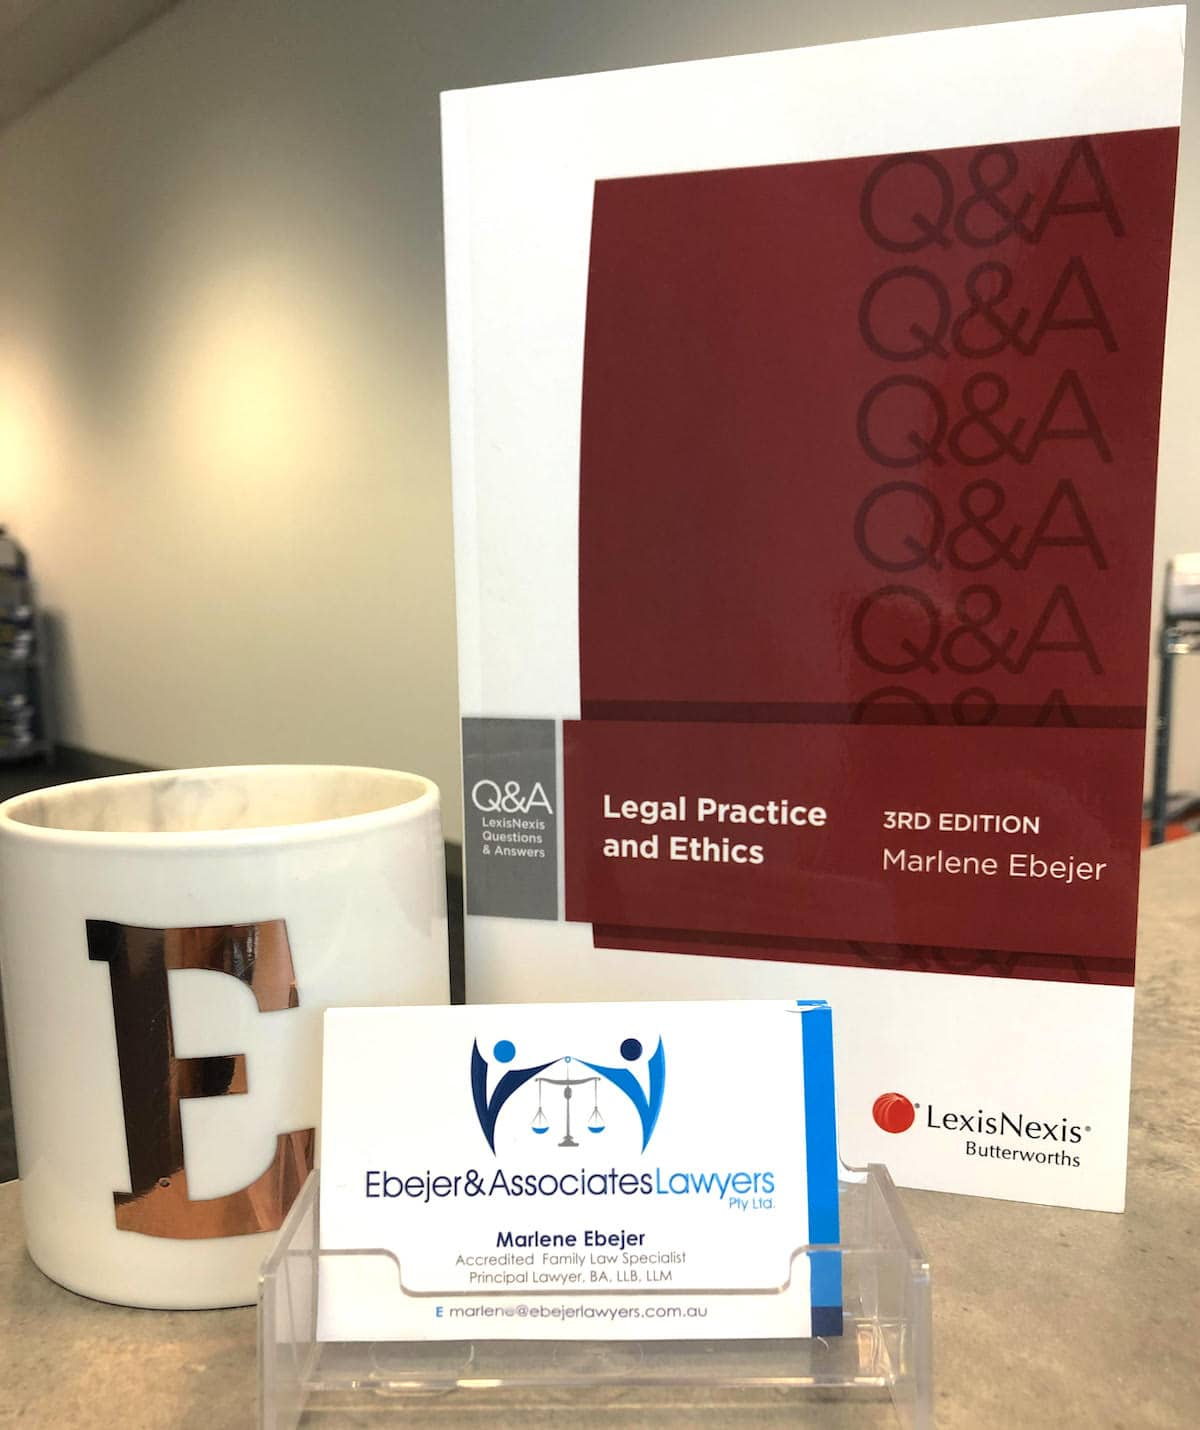 Legal Practice and Ethics, 3rd edition by Marlene Ebejer